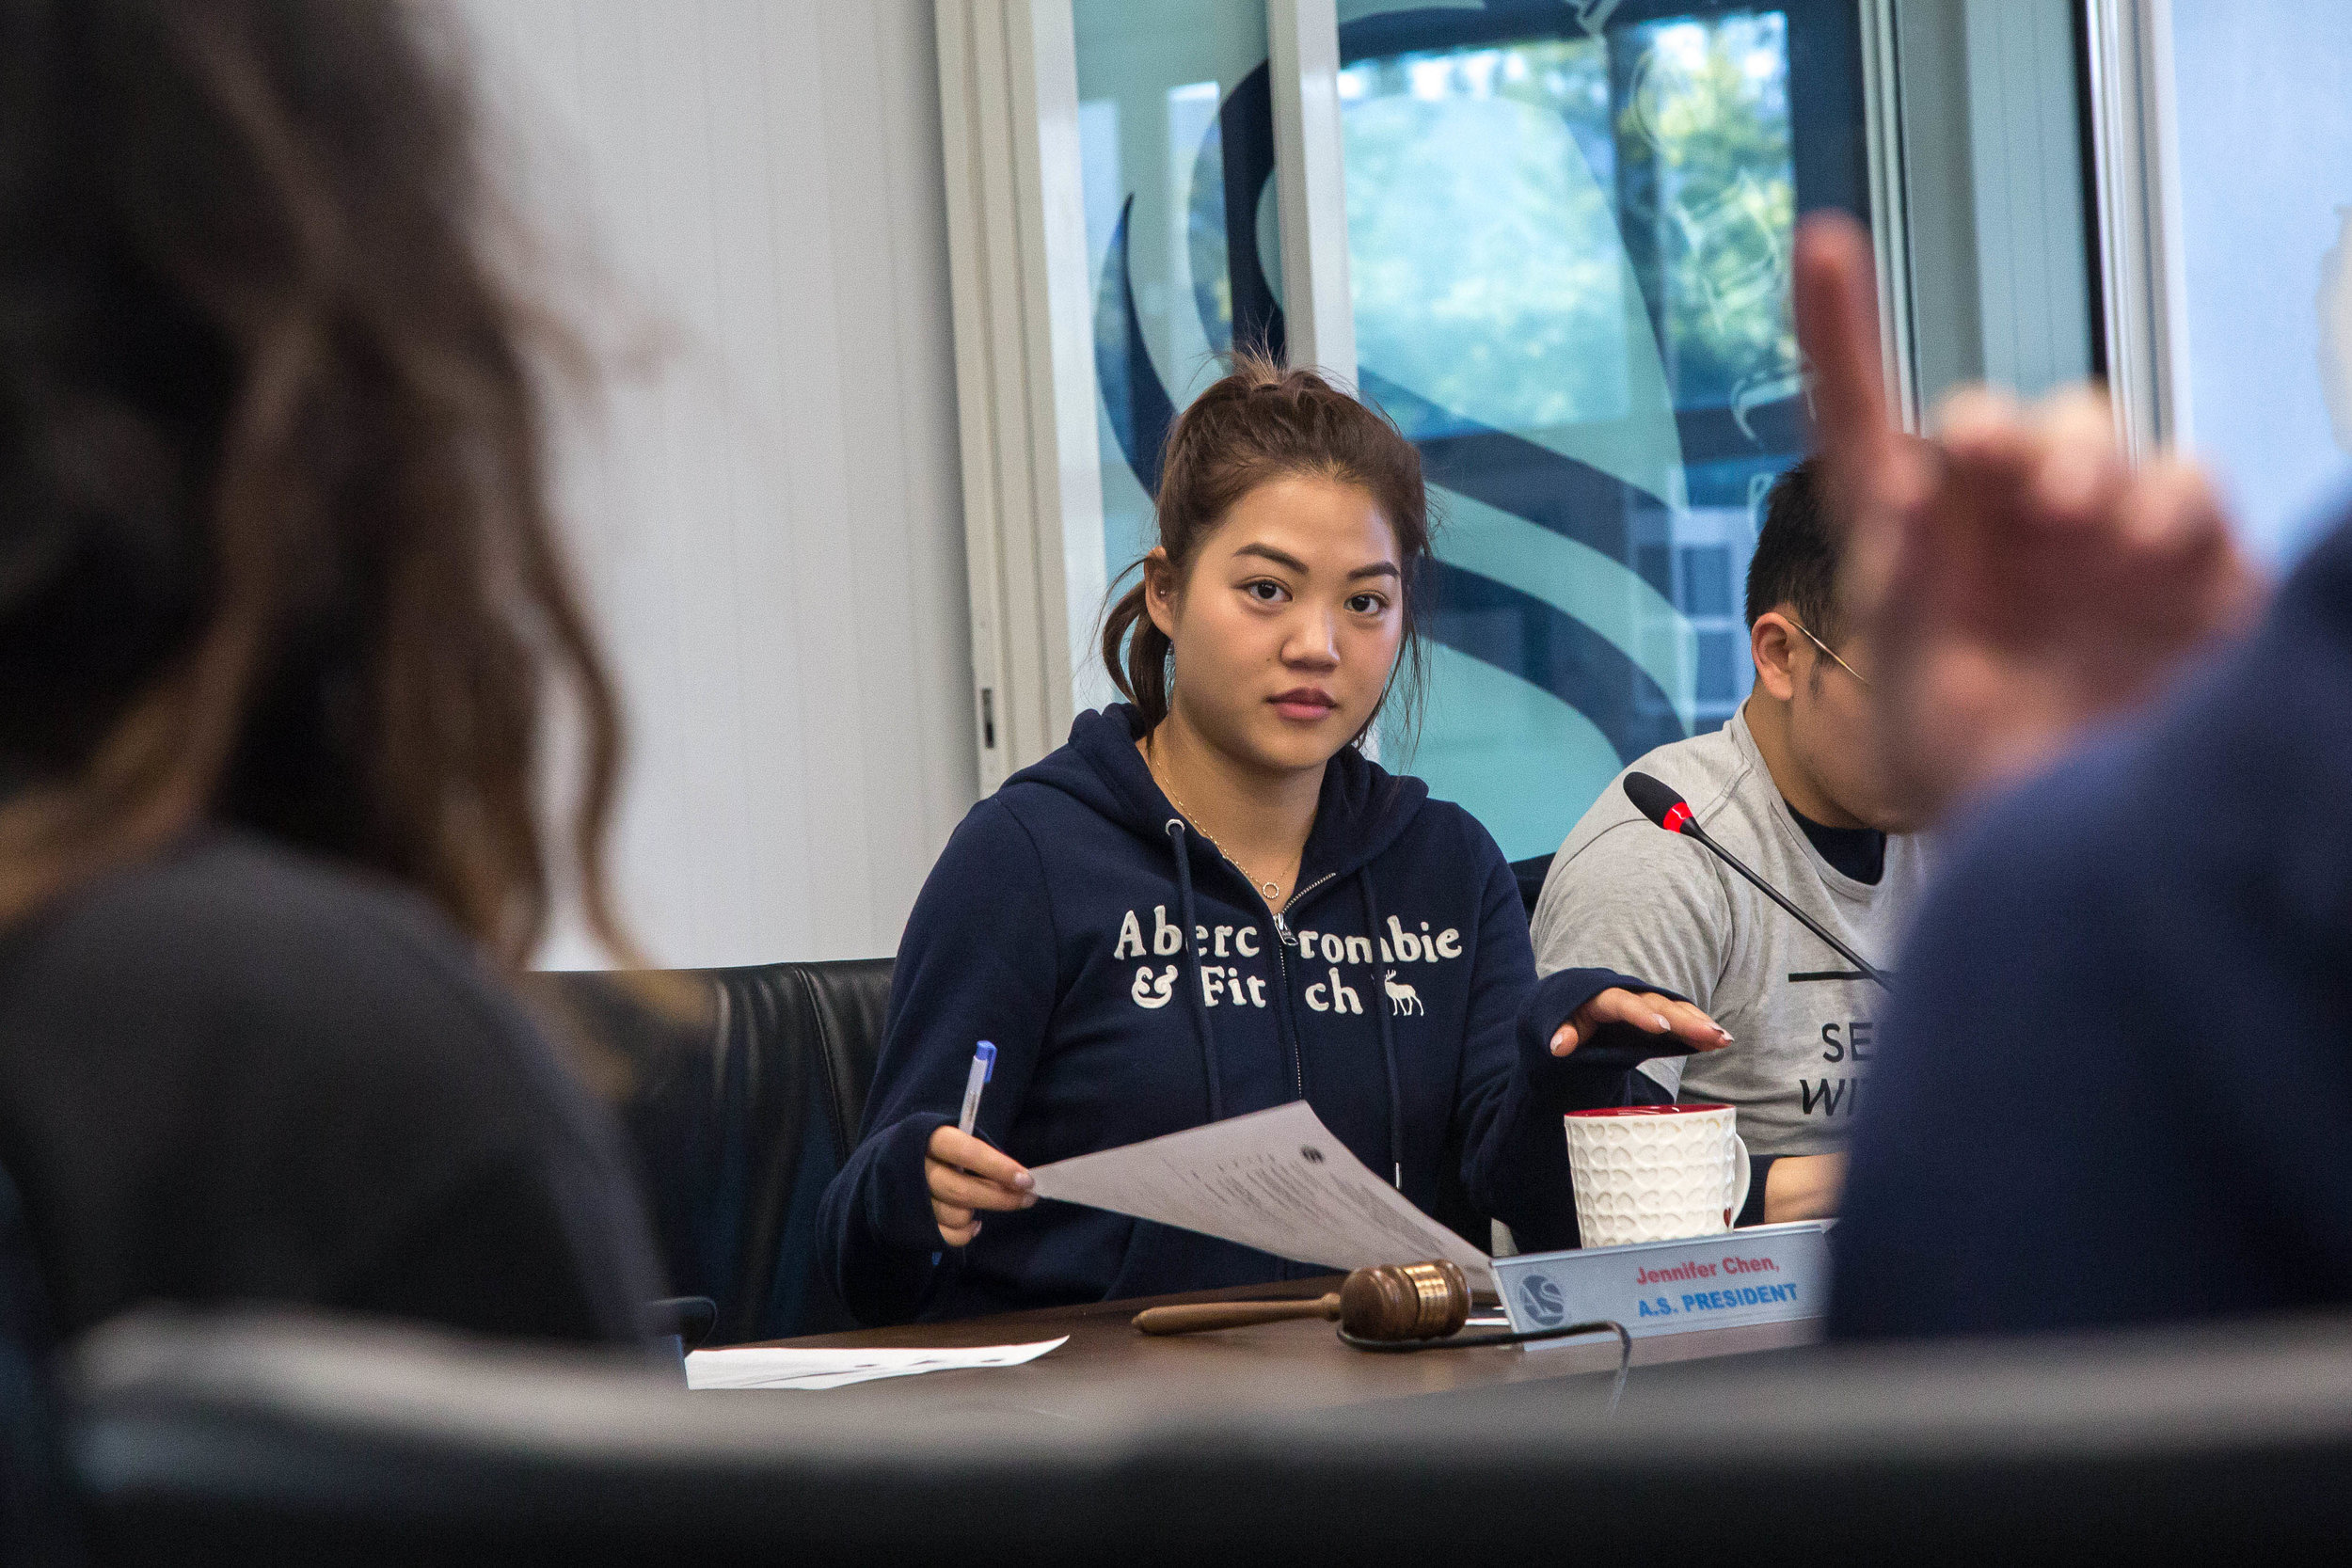 Associated Student President Jennifer Chen discusses some of the ideas put forward by Santa Monica College students during the public comments forum with members of the A.S Board of Directors during the A.S Board of Directors meeting in the Cayton Center Lounge on the Santa Monica College main campus in Santa Monica Calif., on Monday February 26, 2018. The agenda consisted of a public forum, guest speakers, Consent Action Items (under $1000) and Major action items (over $1000). (Corsair Photo: Matthew Martin)